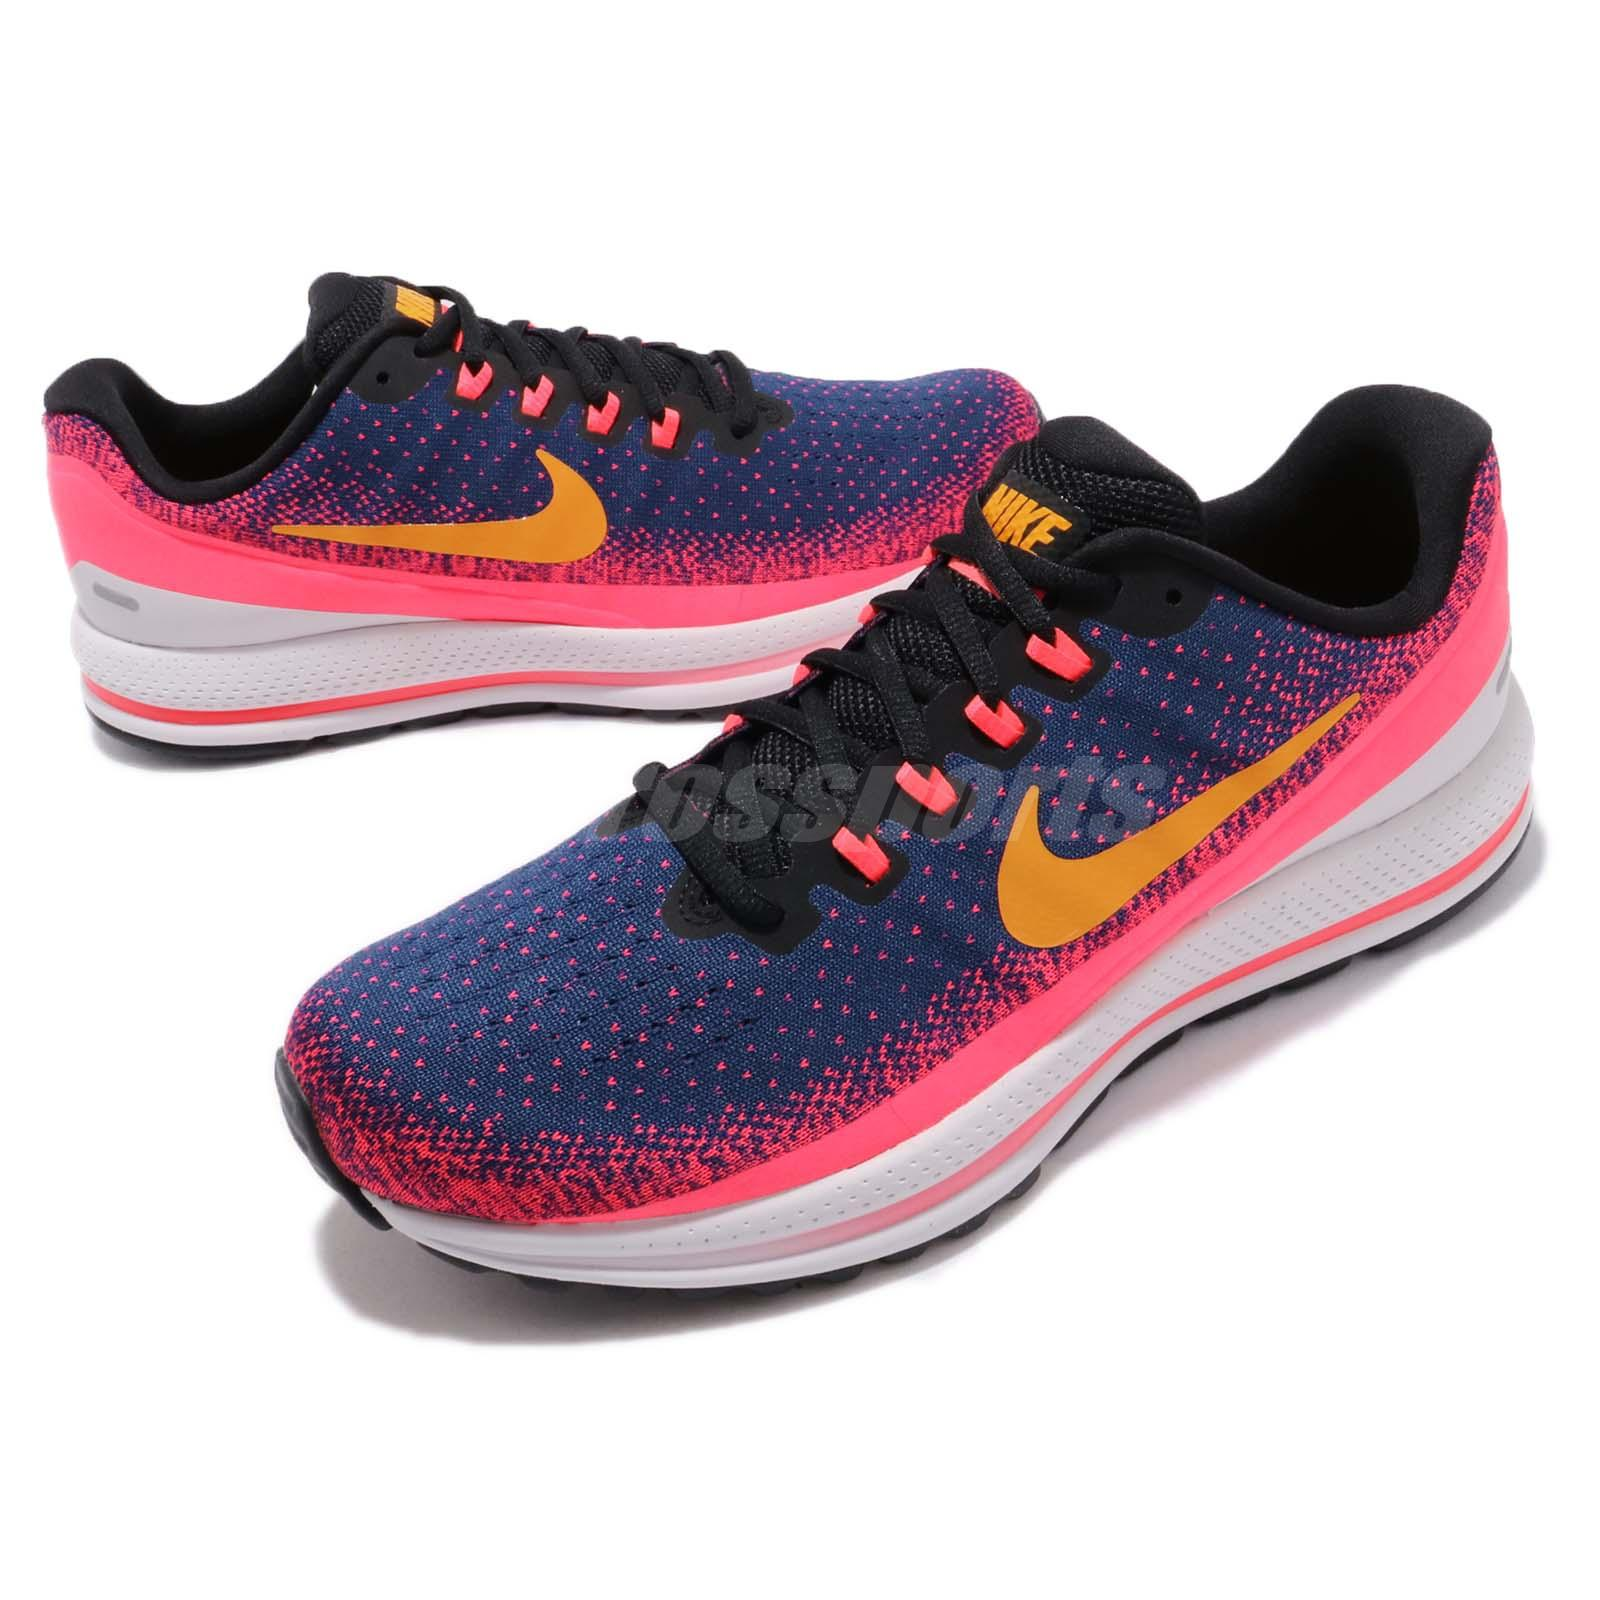 half off a081e b9b81 Nike Air Zoom Vomero 13 XIII Blue Void Orange Peel Men Running Shoes ...